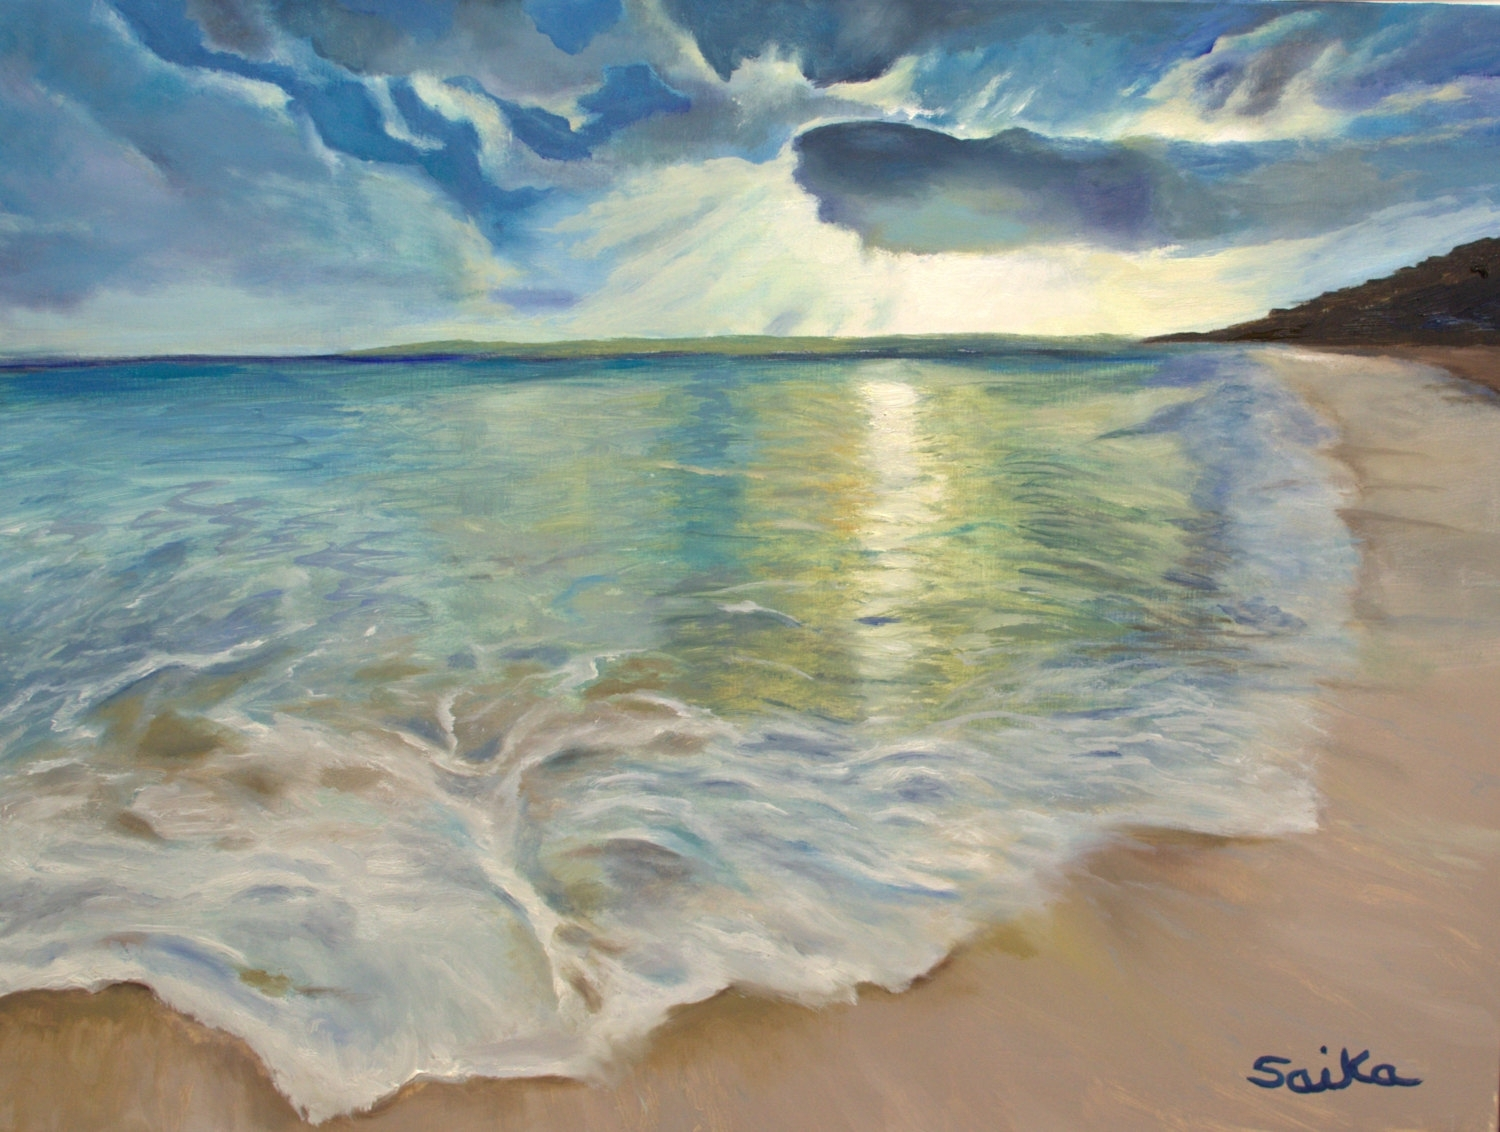 Summer Love, Oil Painting 18x24, Beach Scene,ocean, Wall Art, Home In Best And Newest Canvas Wall Art Beach Scenes (View 6 of 15)